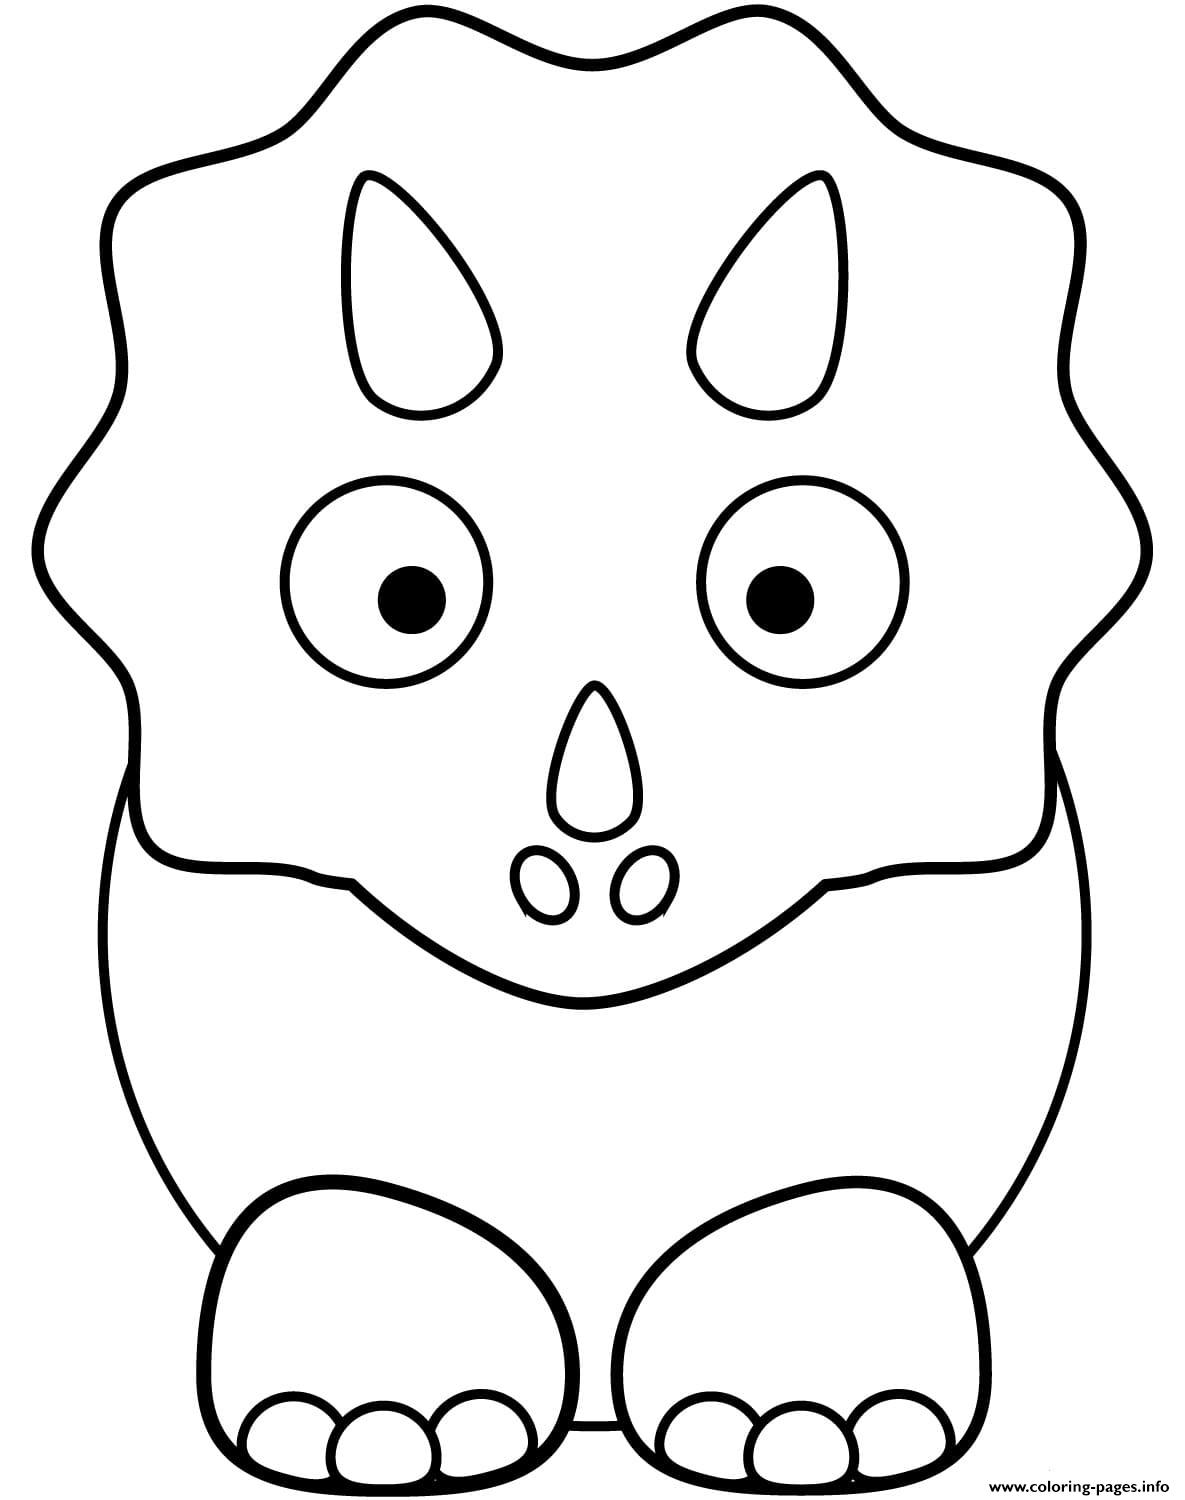 baby triceratops coloring page cute triceratops baby coloring pages printable page coloring baby triceratops